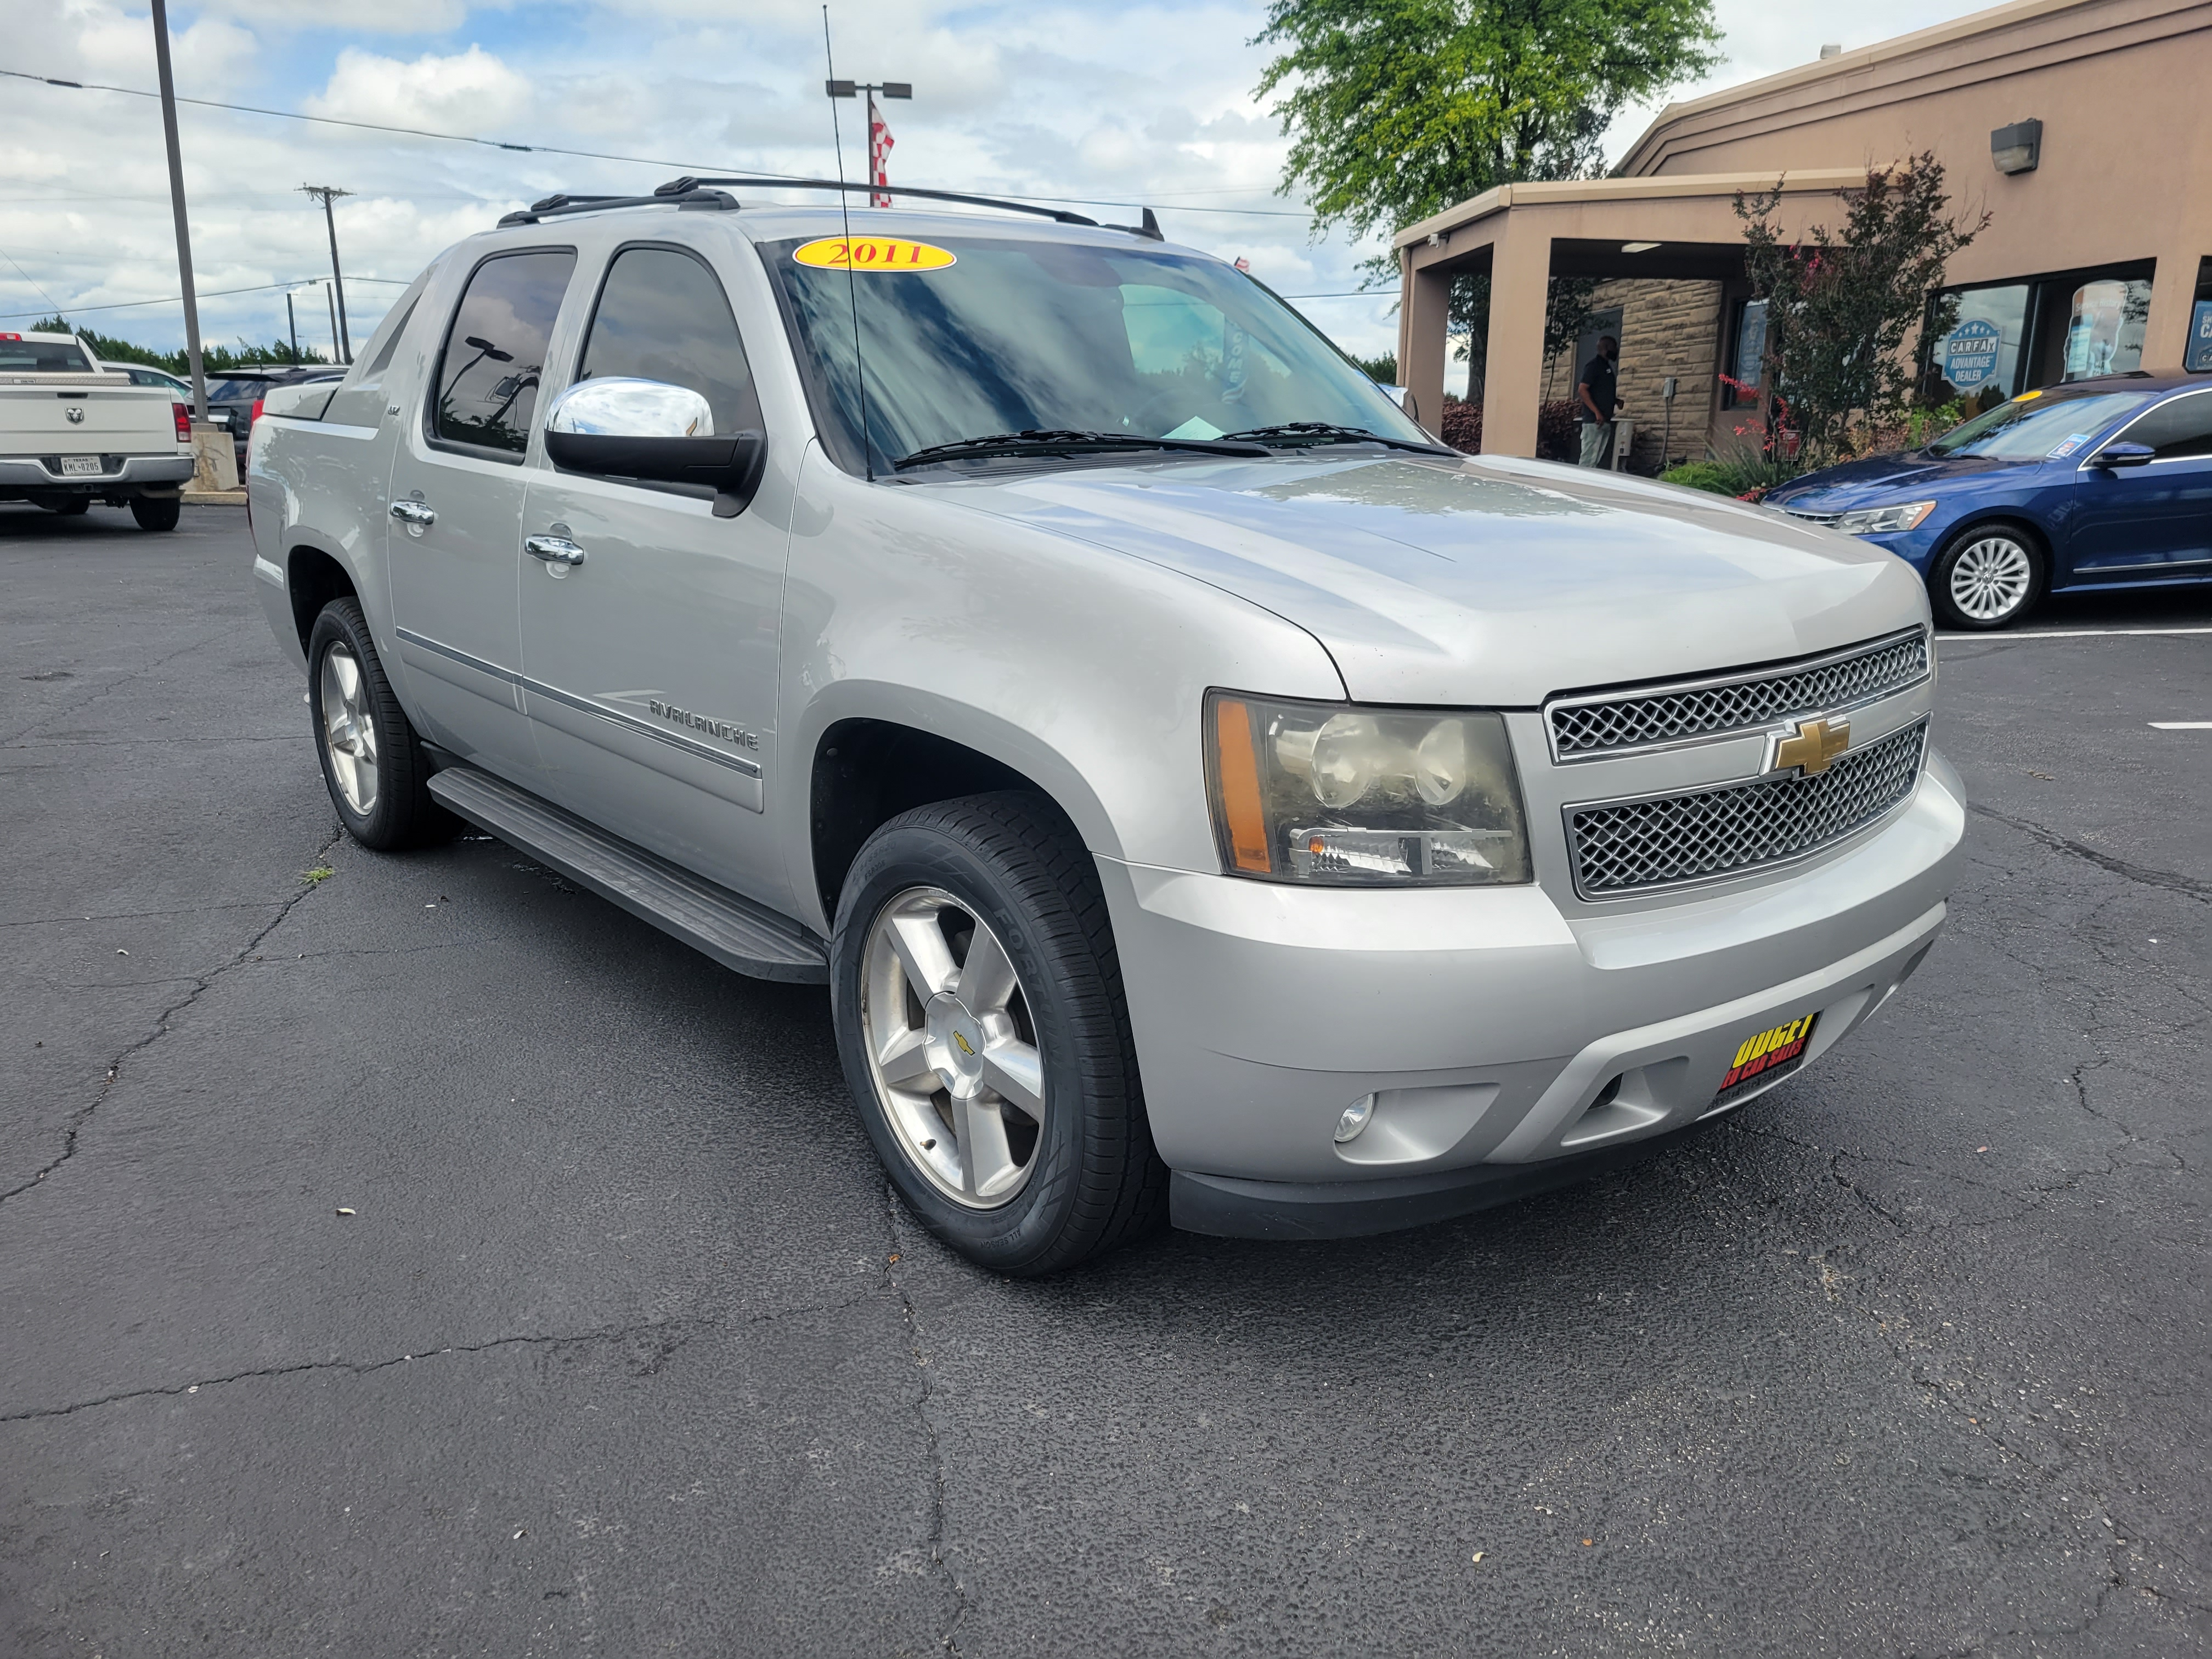 used vehicle - Truck CHEVROLET AVALANCHE 2011